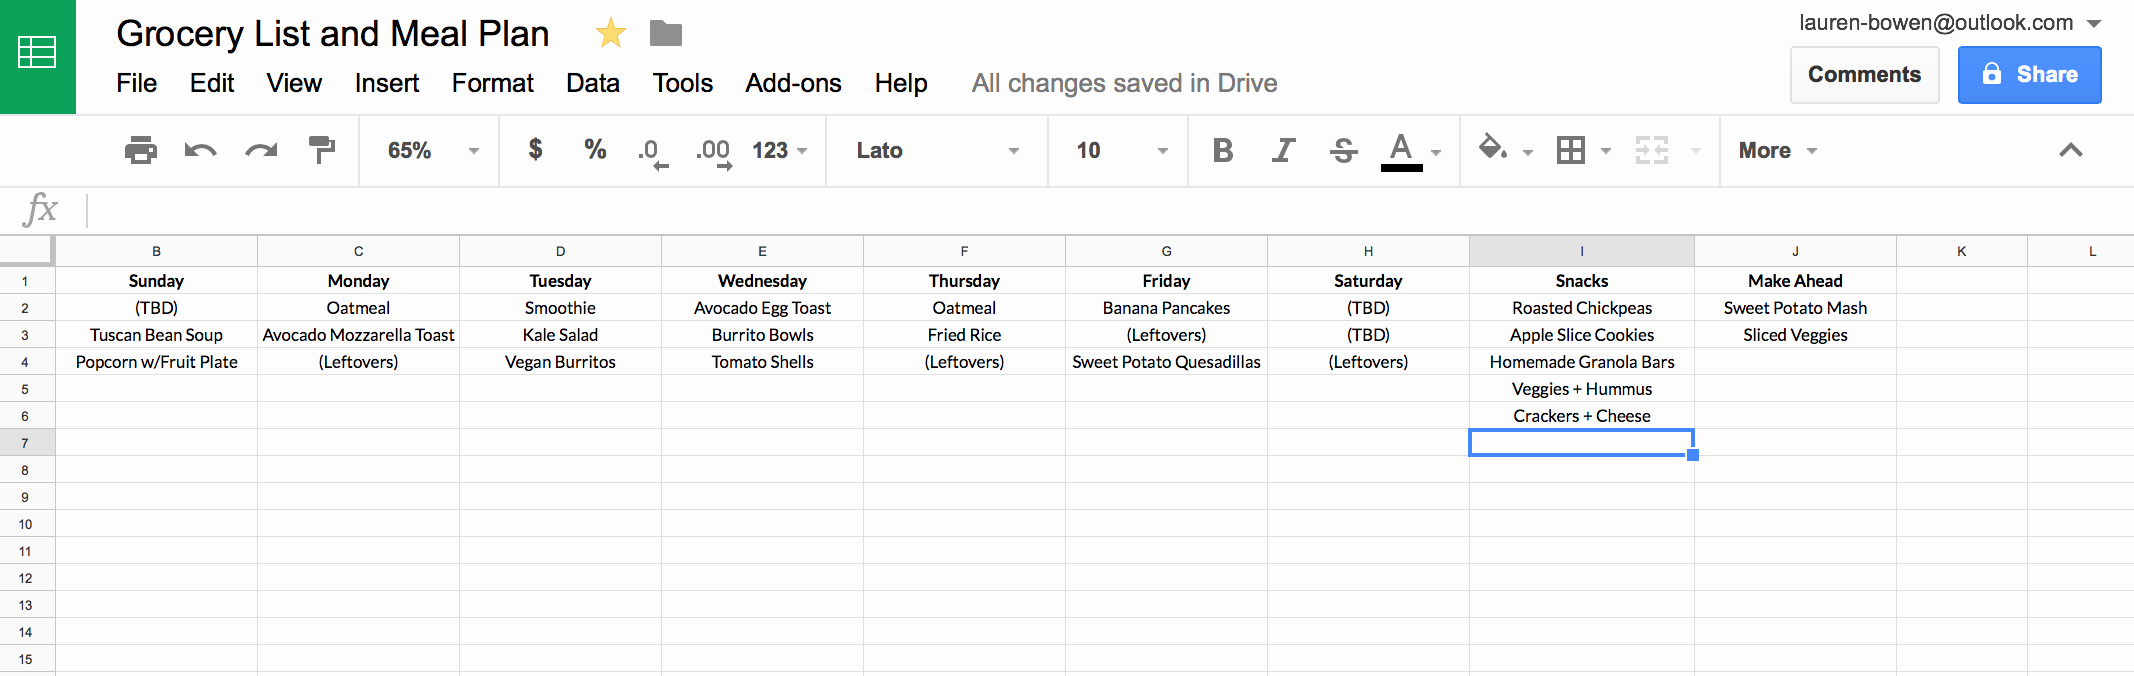 Google Drive Recipe Template Beautiful How I Use Google Sheets for Grocery Shopping and Meal Planning